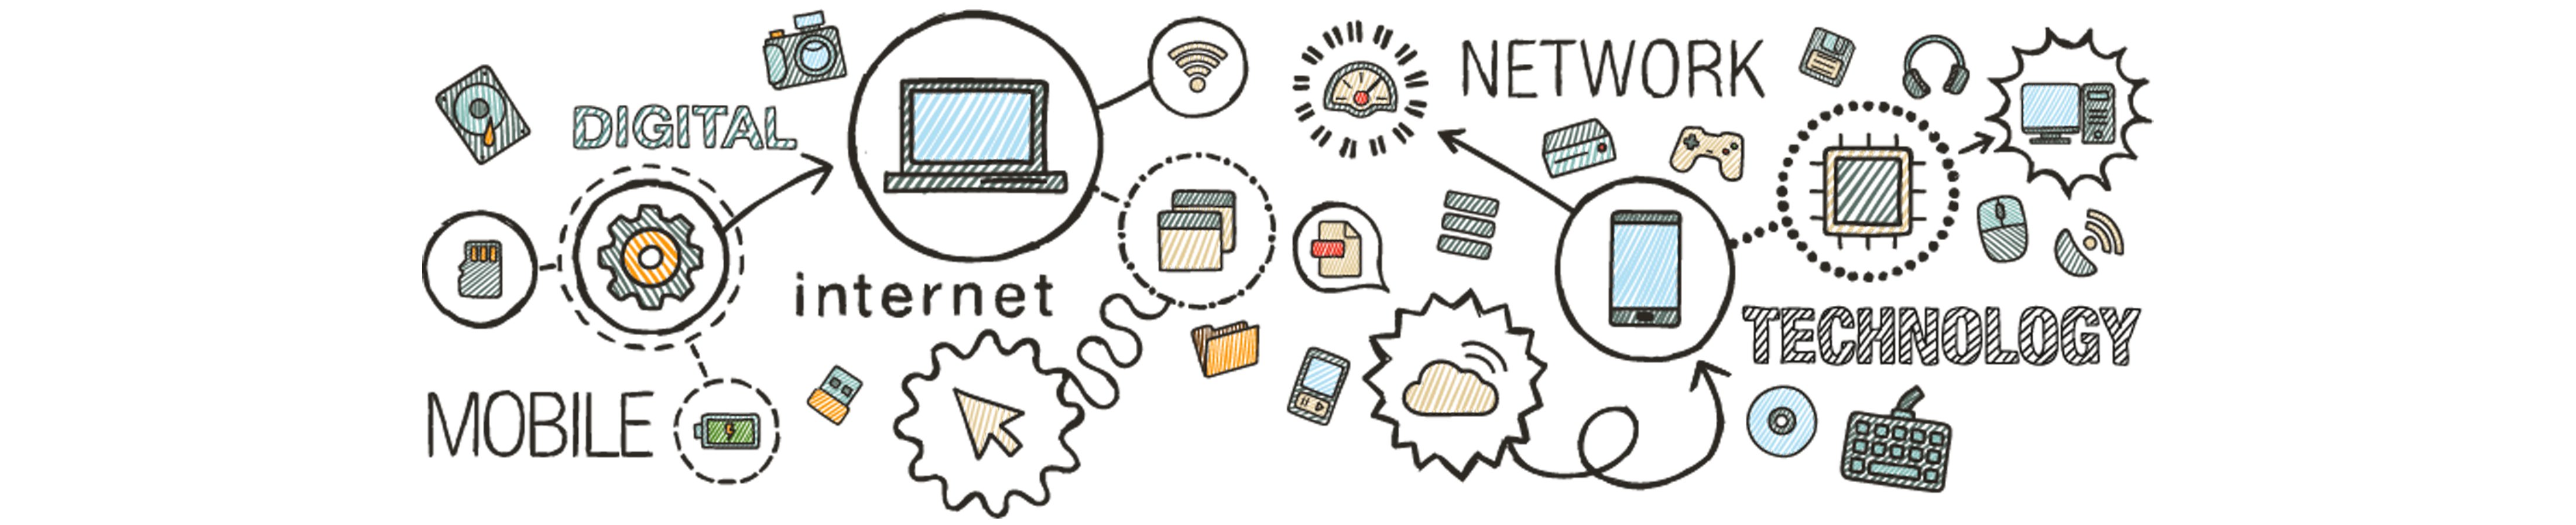 decorative header image showing various technology tools and icons